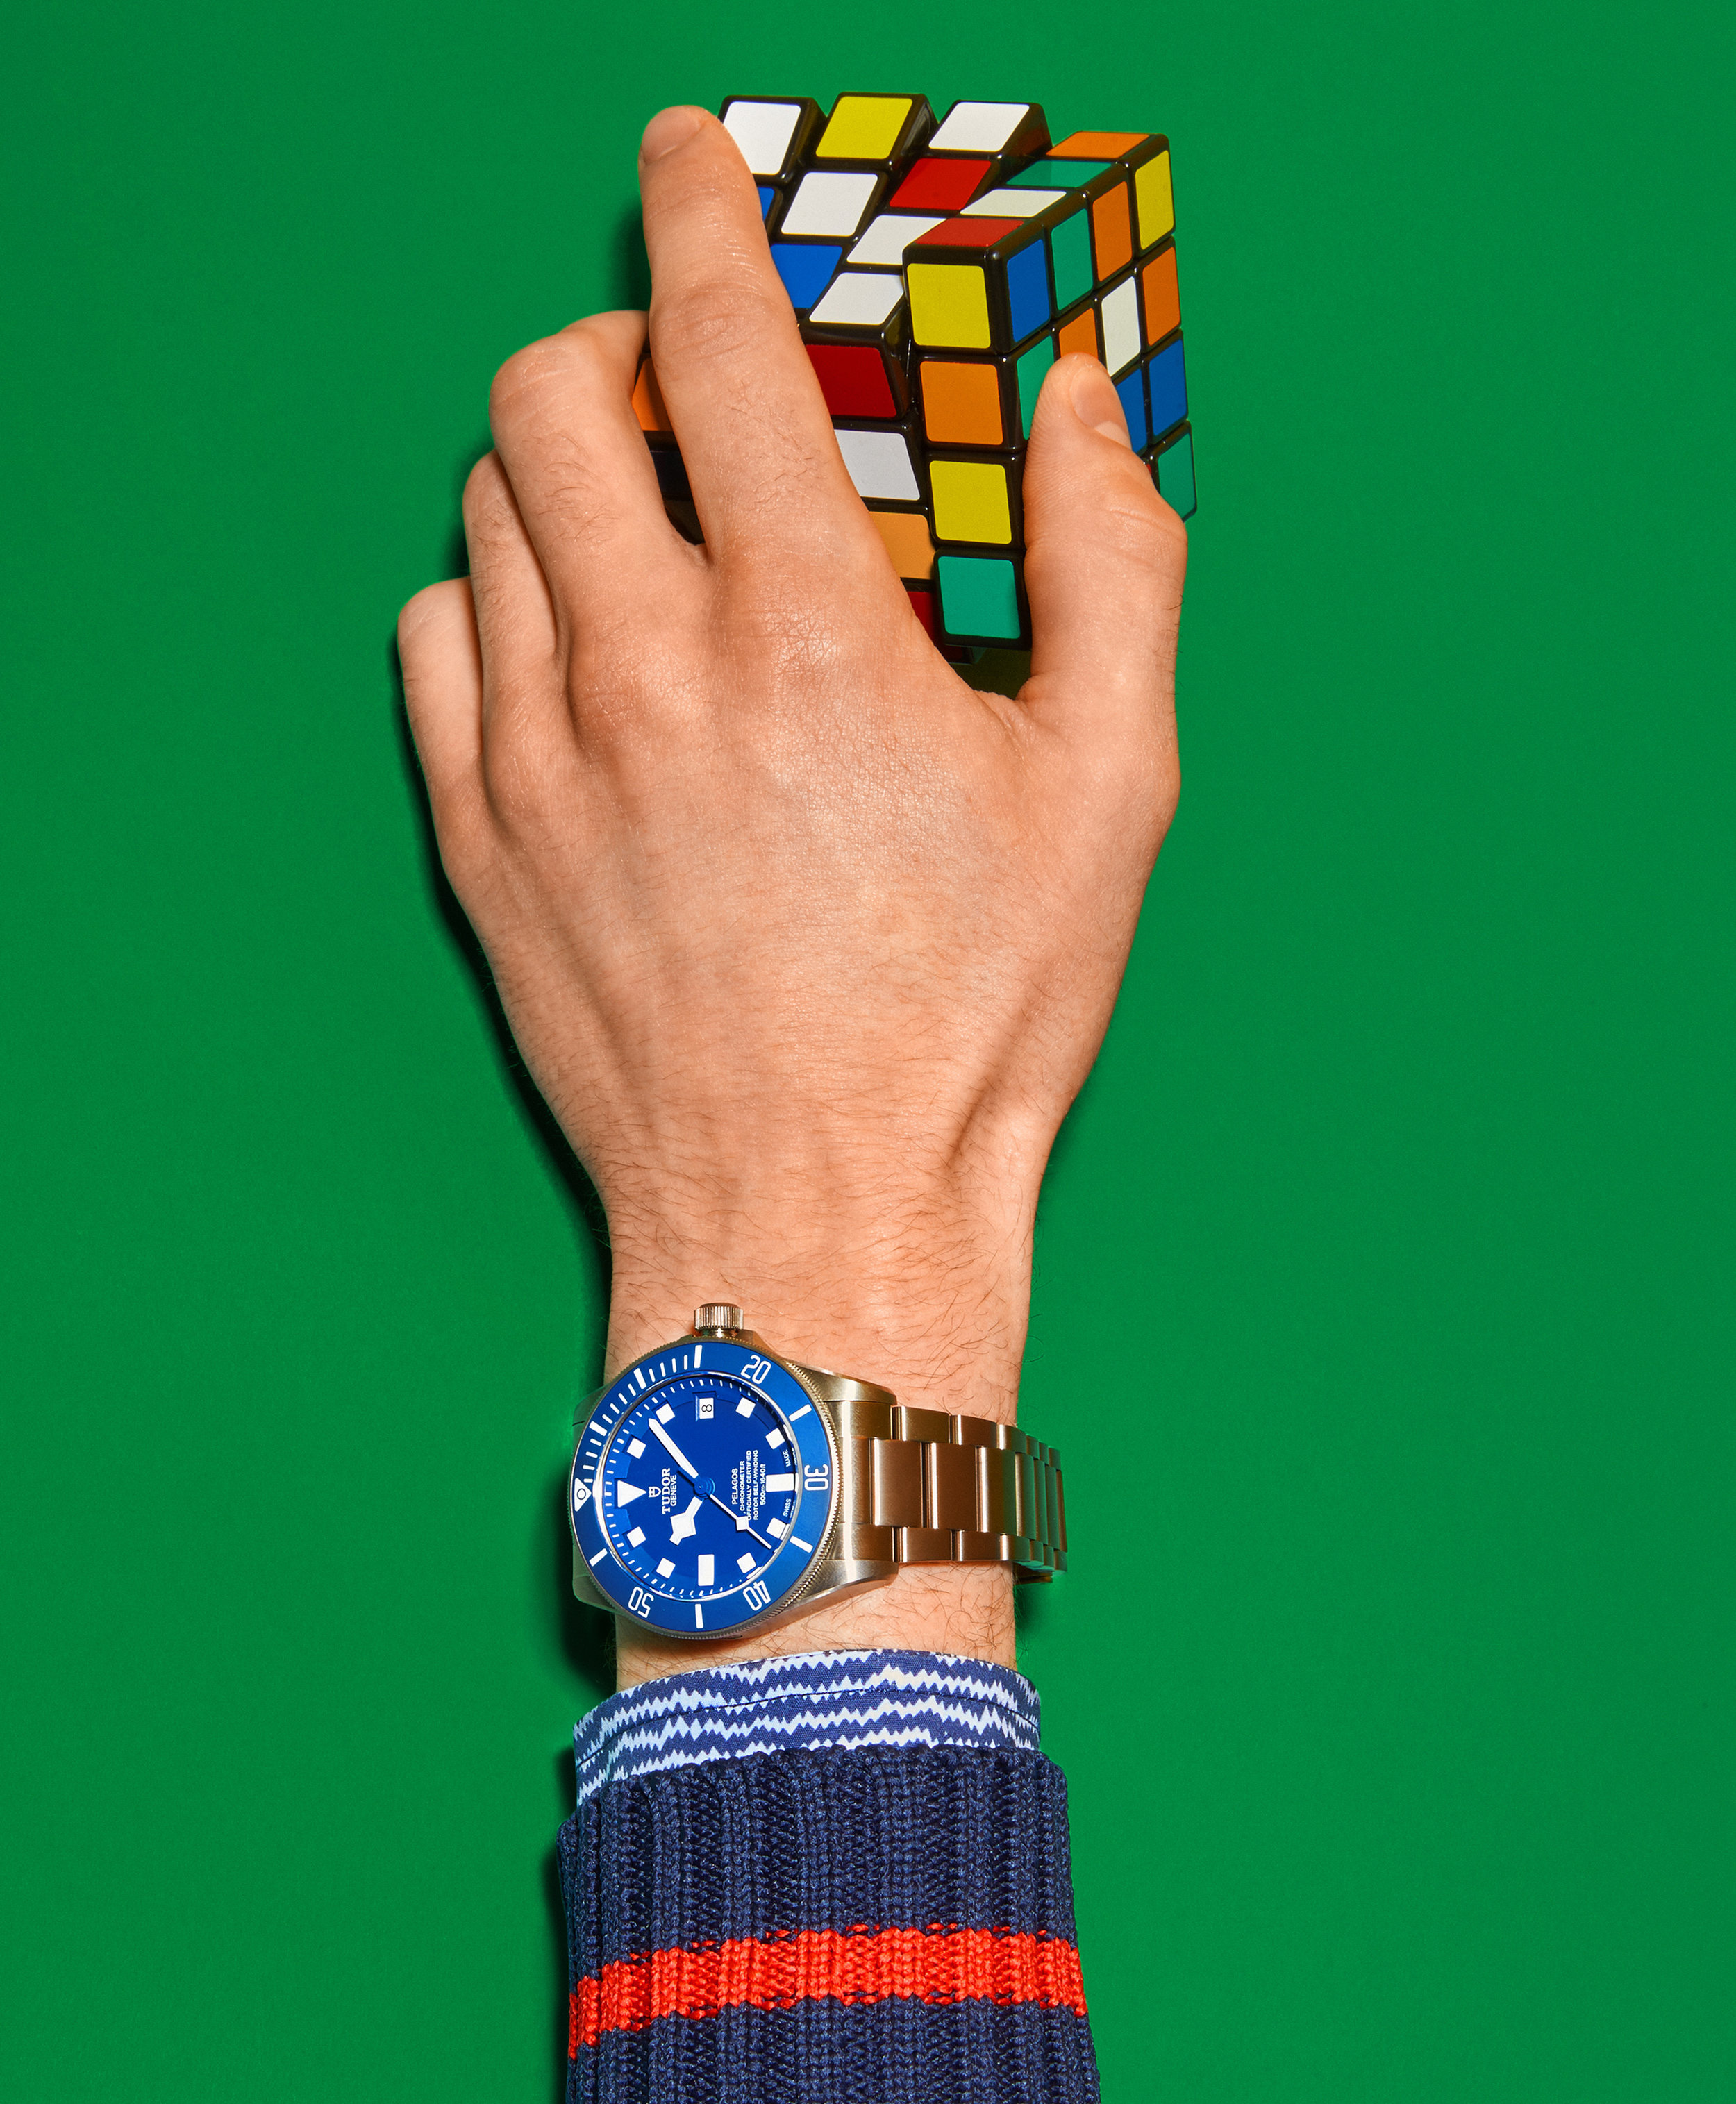 Birks Editorial - Creative Direction and Art Direction by Guillaume Briere (Montreal and Toronto) - Photography by Gabor Jurina - Watches, Fashion and Jewellery photography